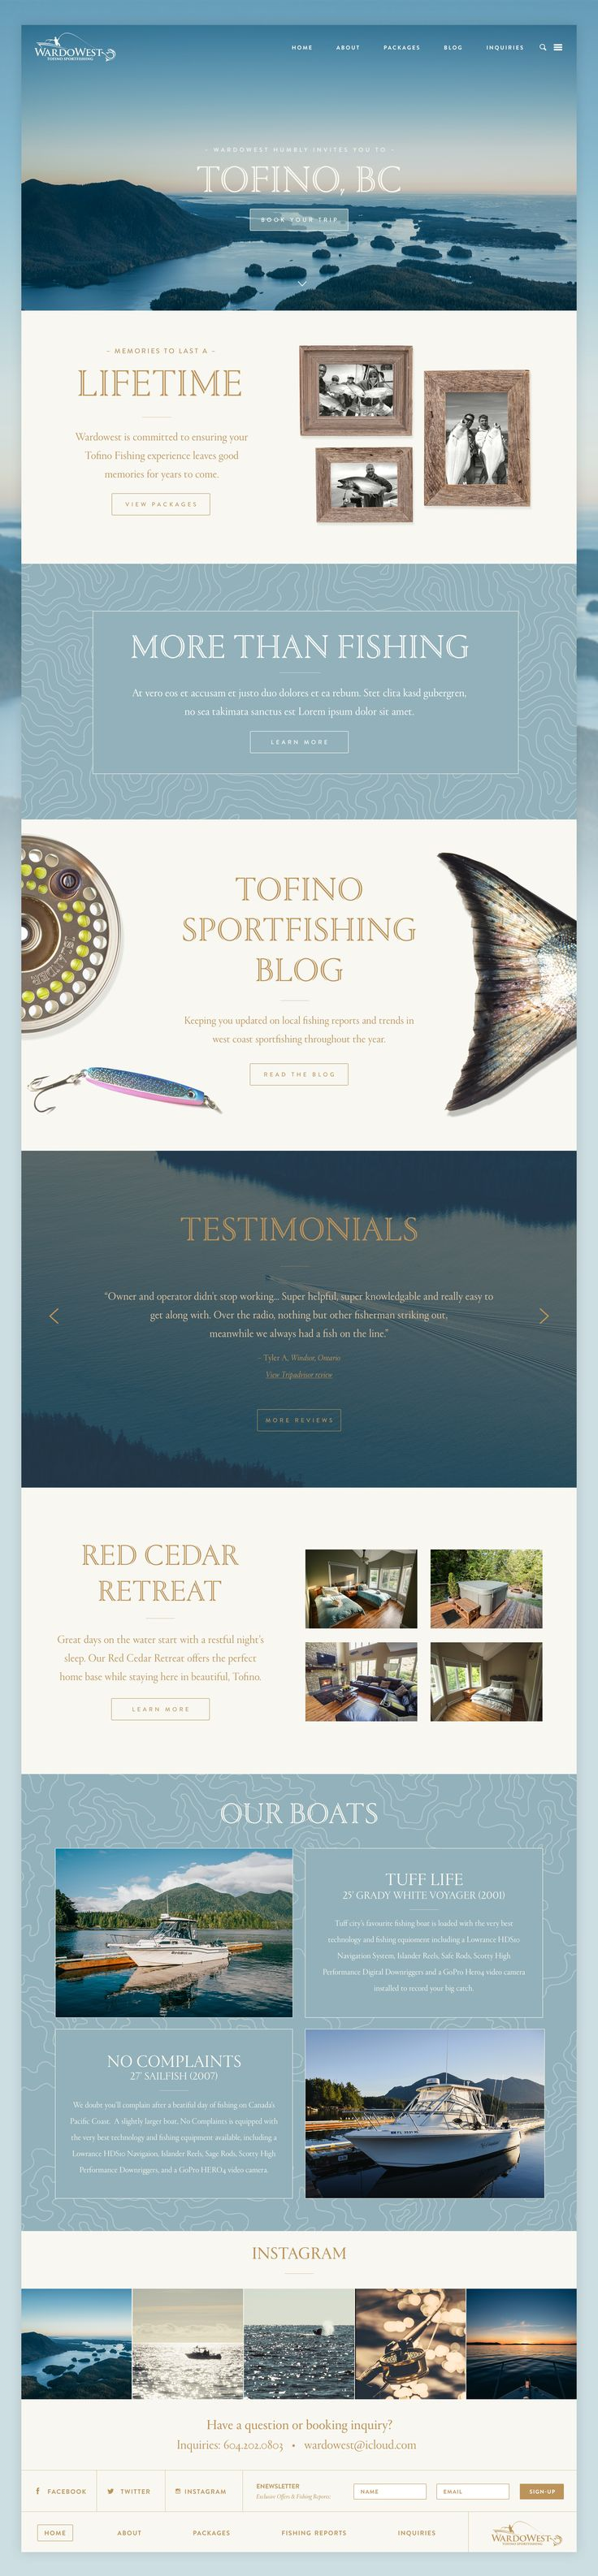 Wardowest full retina panels web design blue light blue navy fishing classic traditional responsive fly masculine website